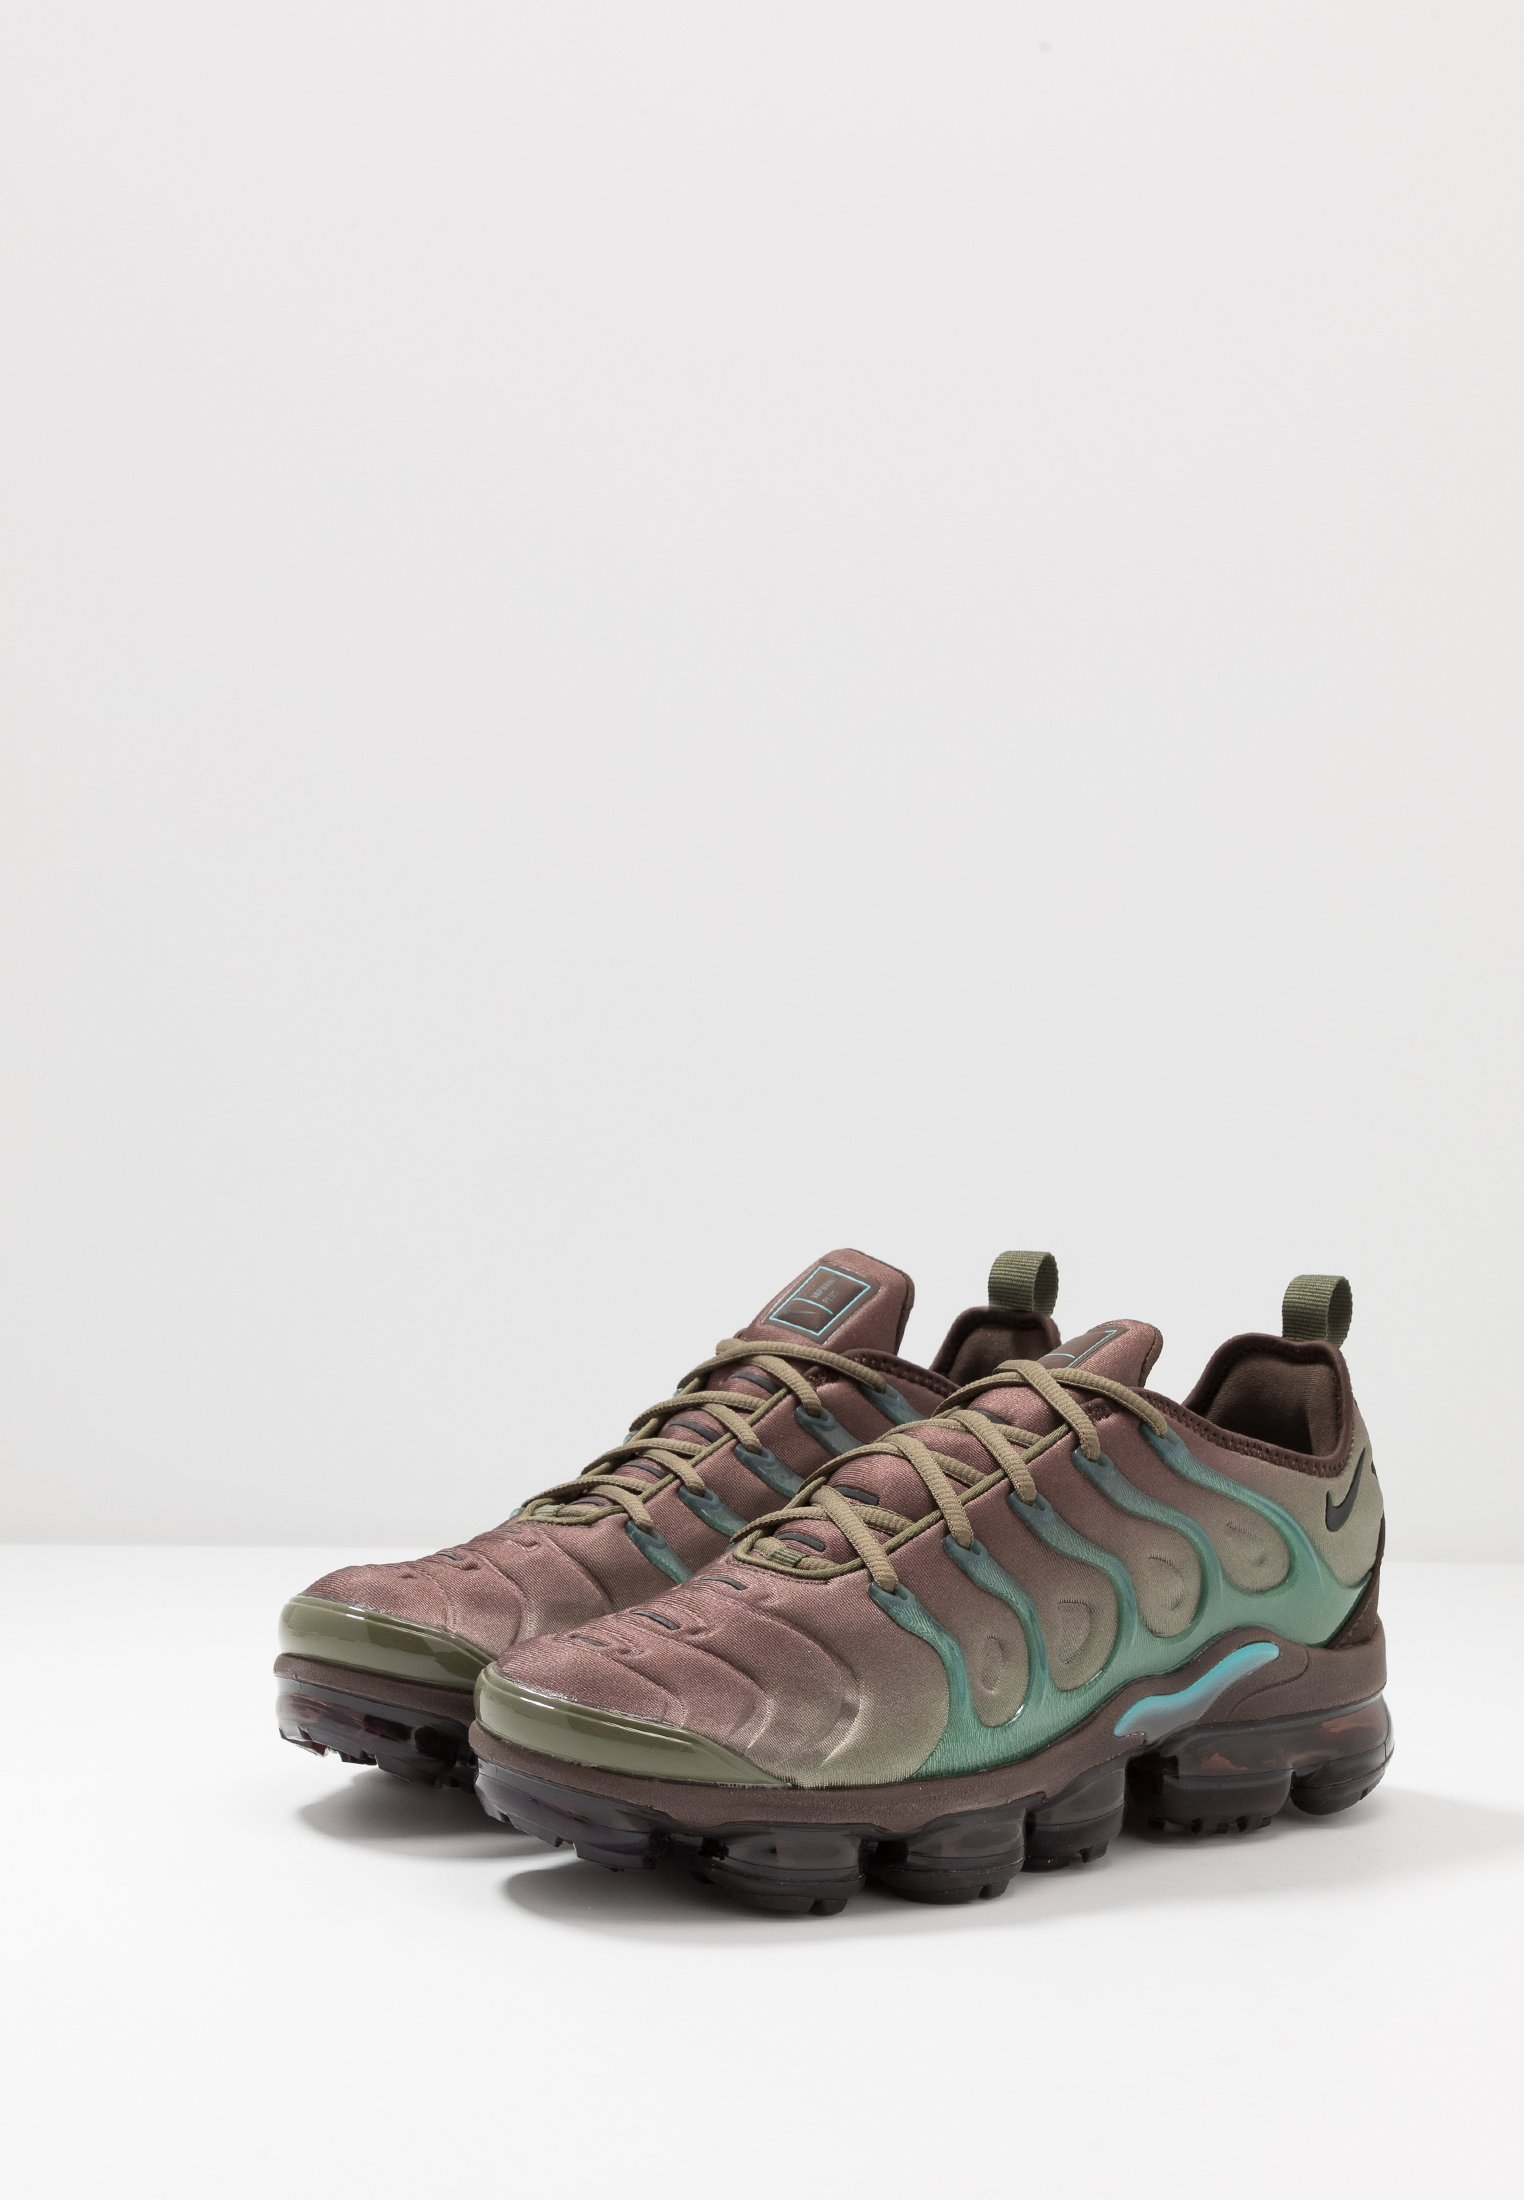 Nike Sportswear AIR VAPORMAX PLUS - Baskets basses medium olive/black/baroque brown/ teal